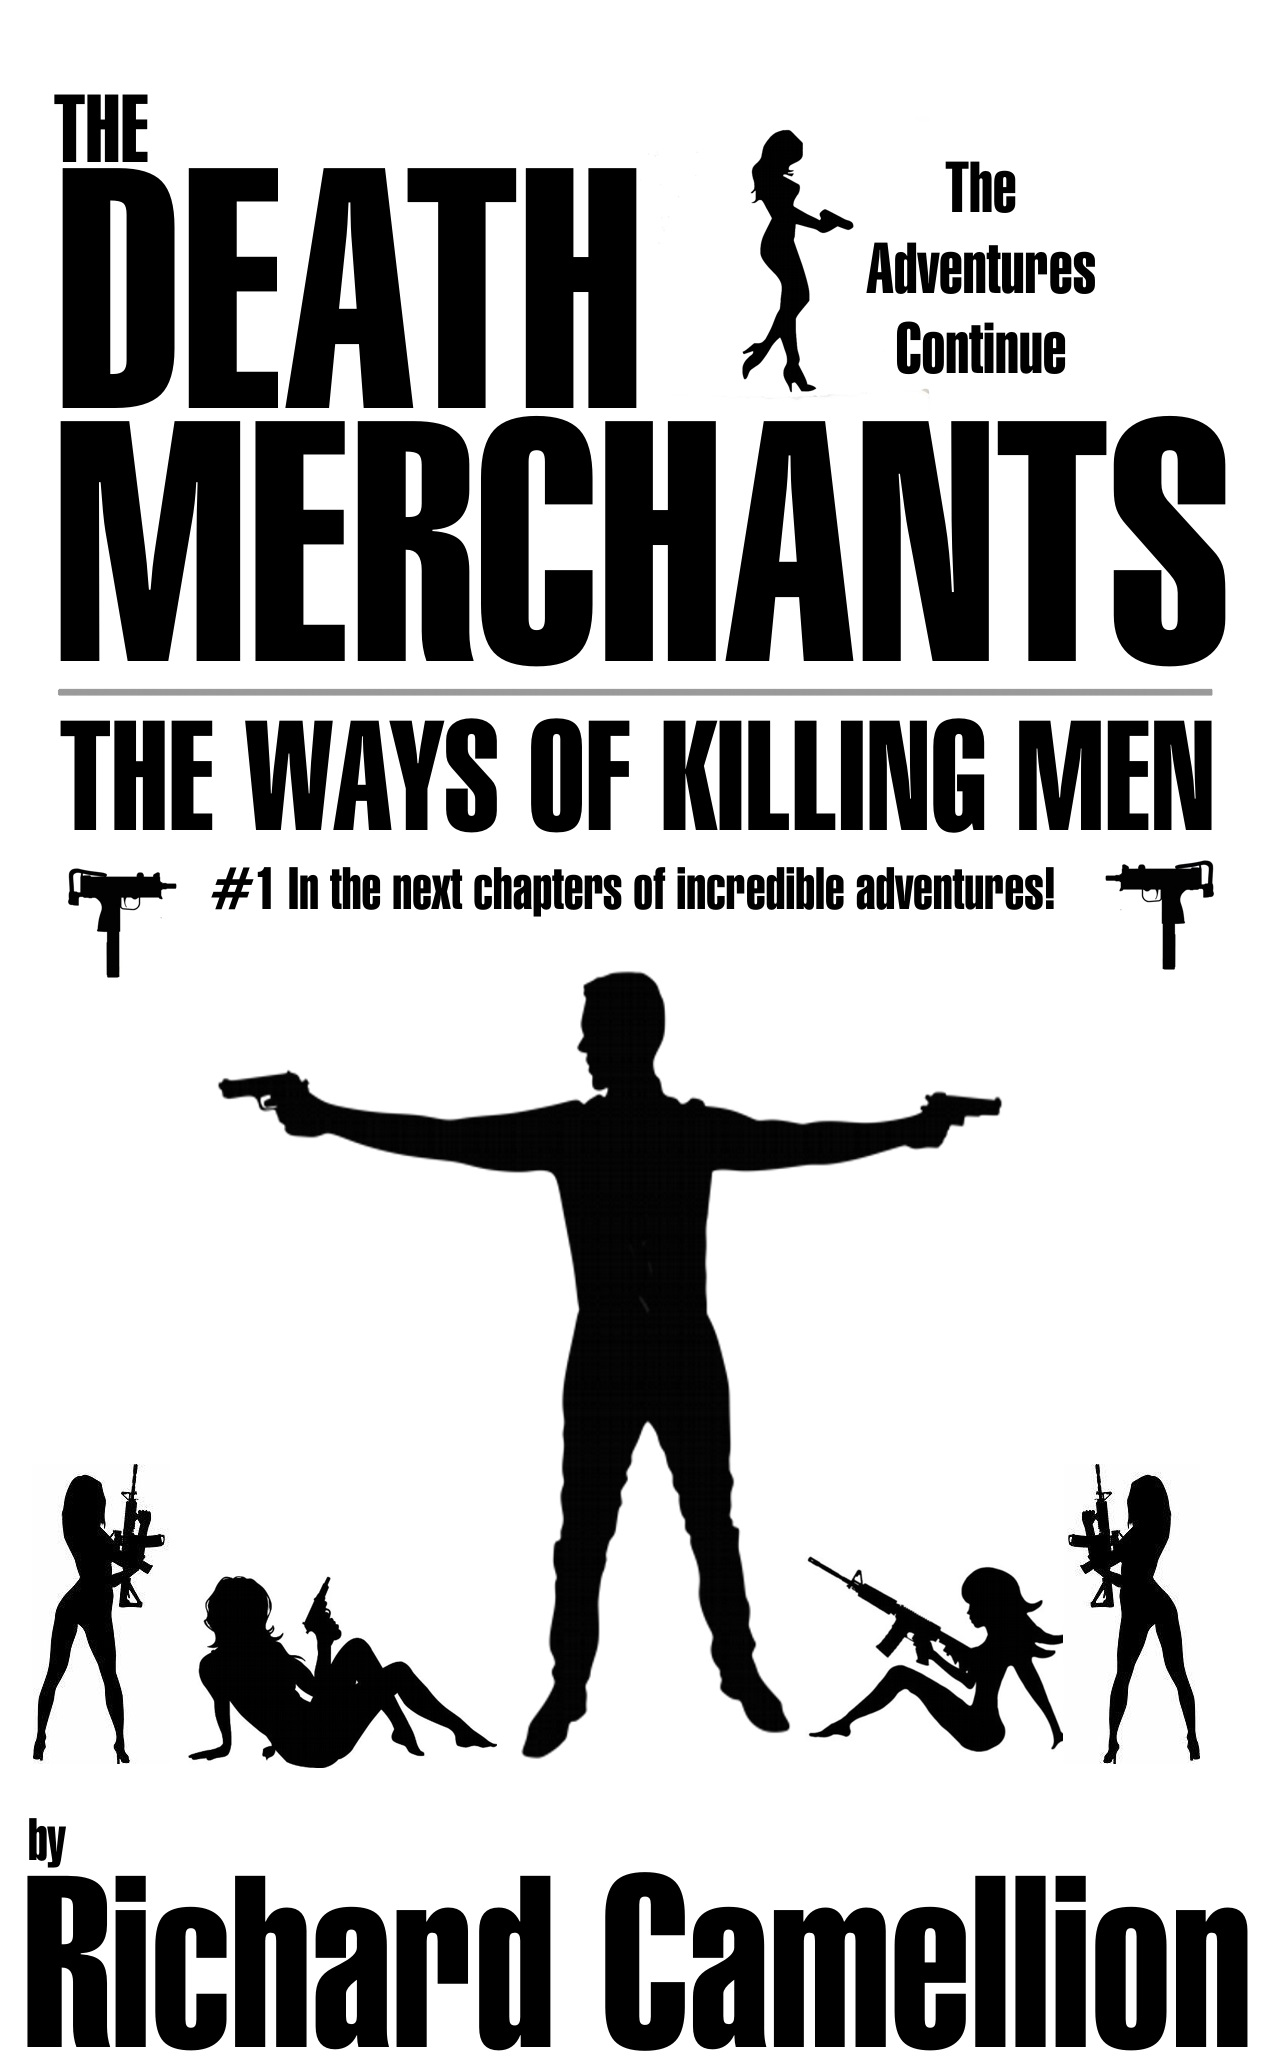 The Death Merchants 2018 | The Ways of Killing Men